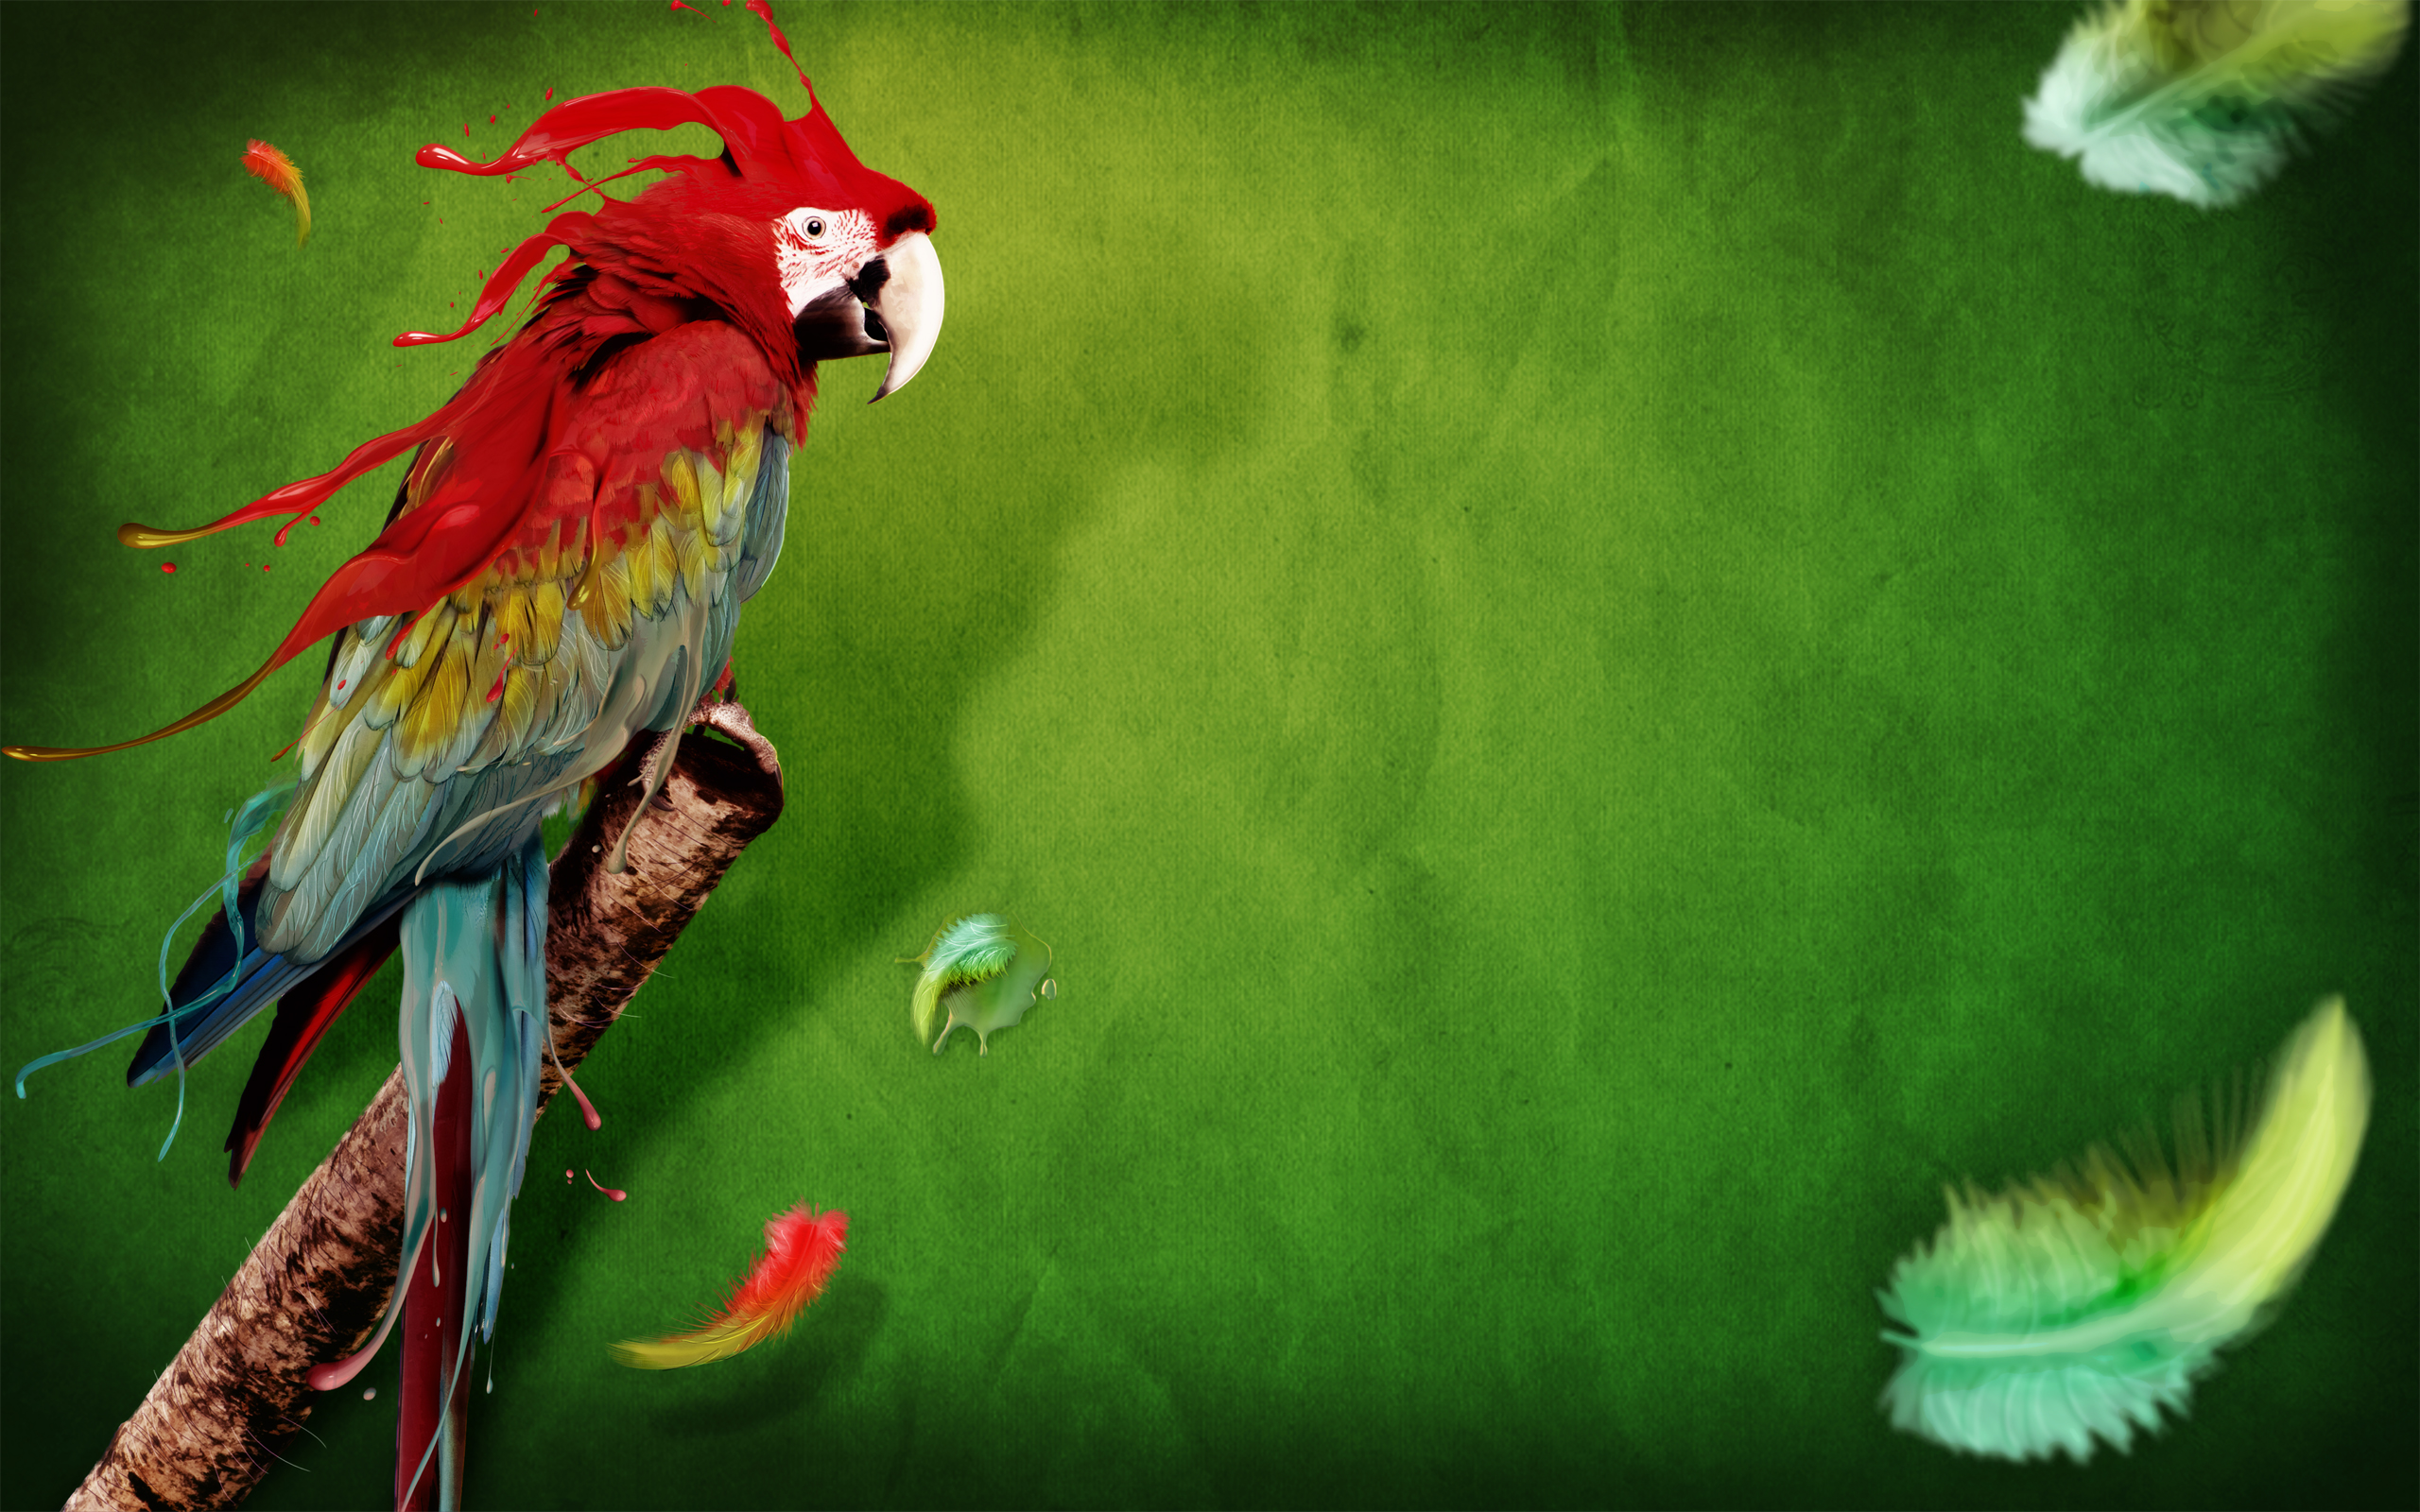 Splash of Parrot 1793.51 Kb